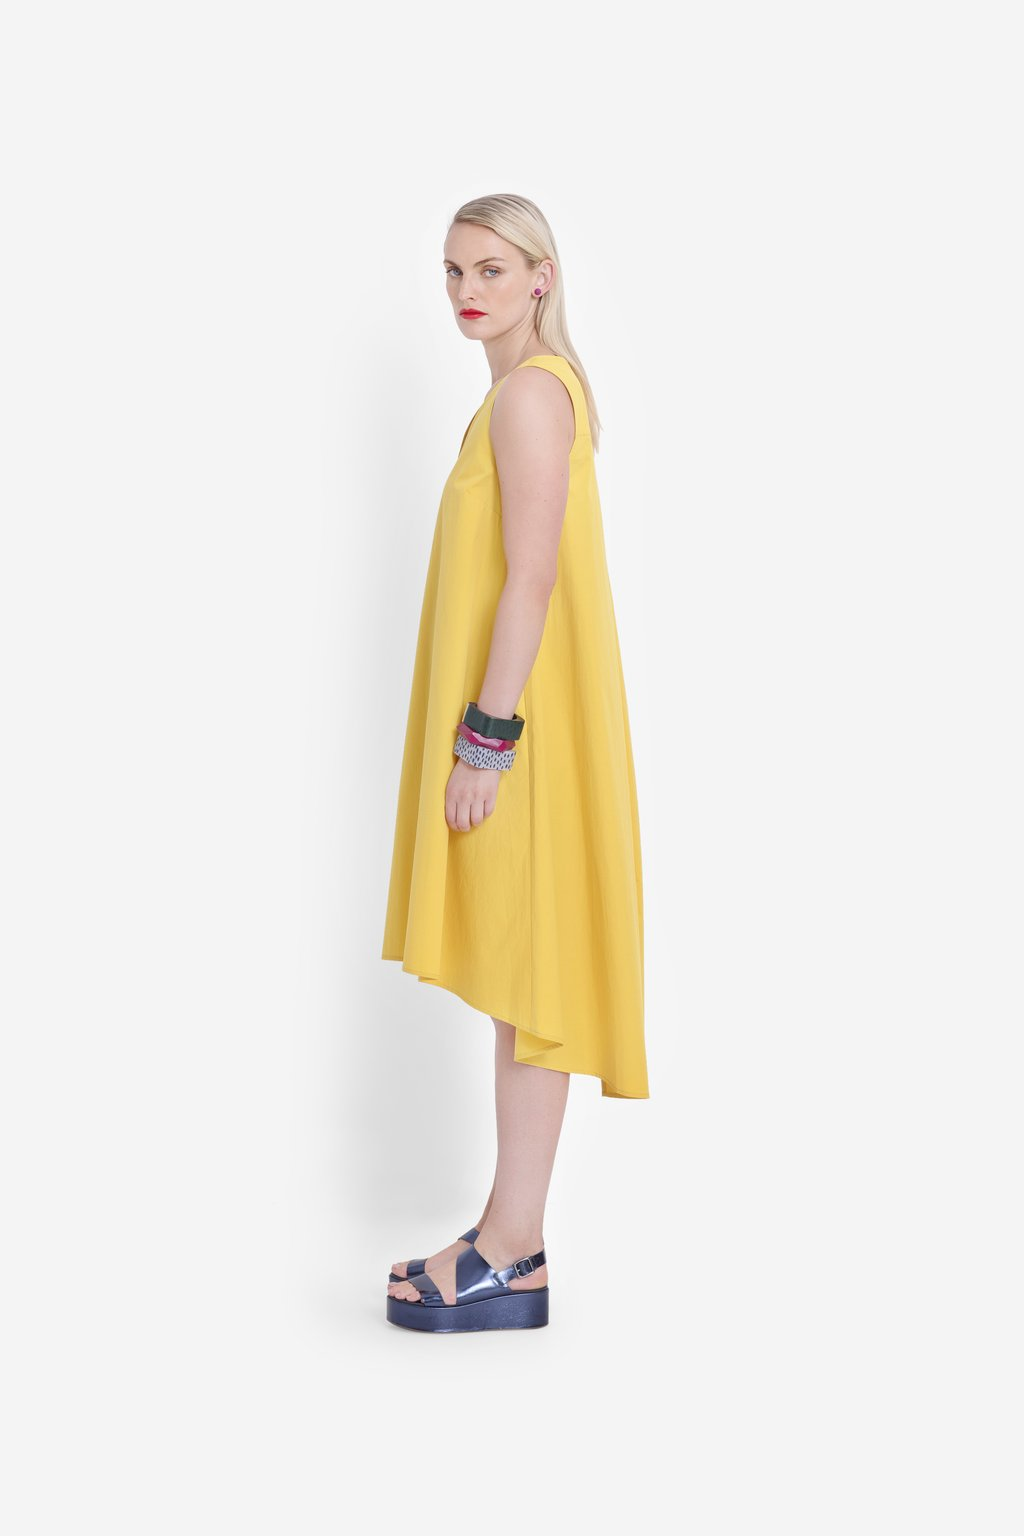 ELK The Label - Nyland Dress online at PAYA boutique